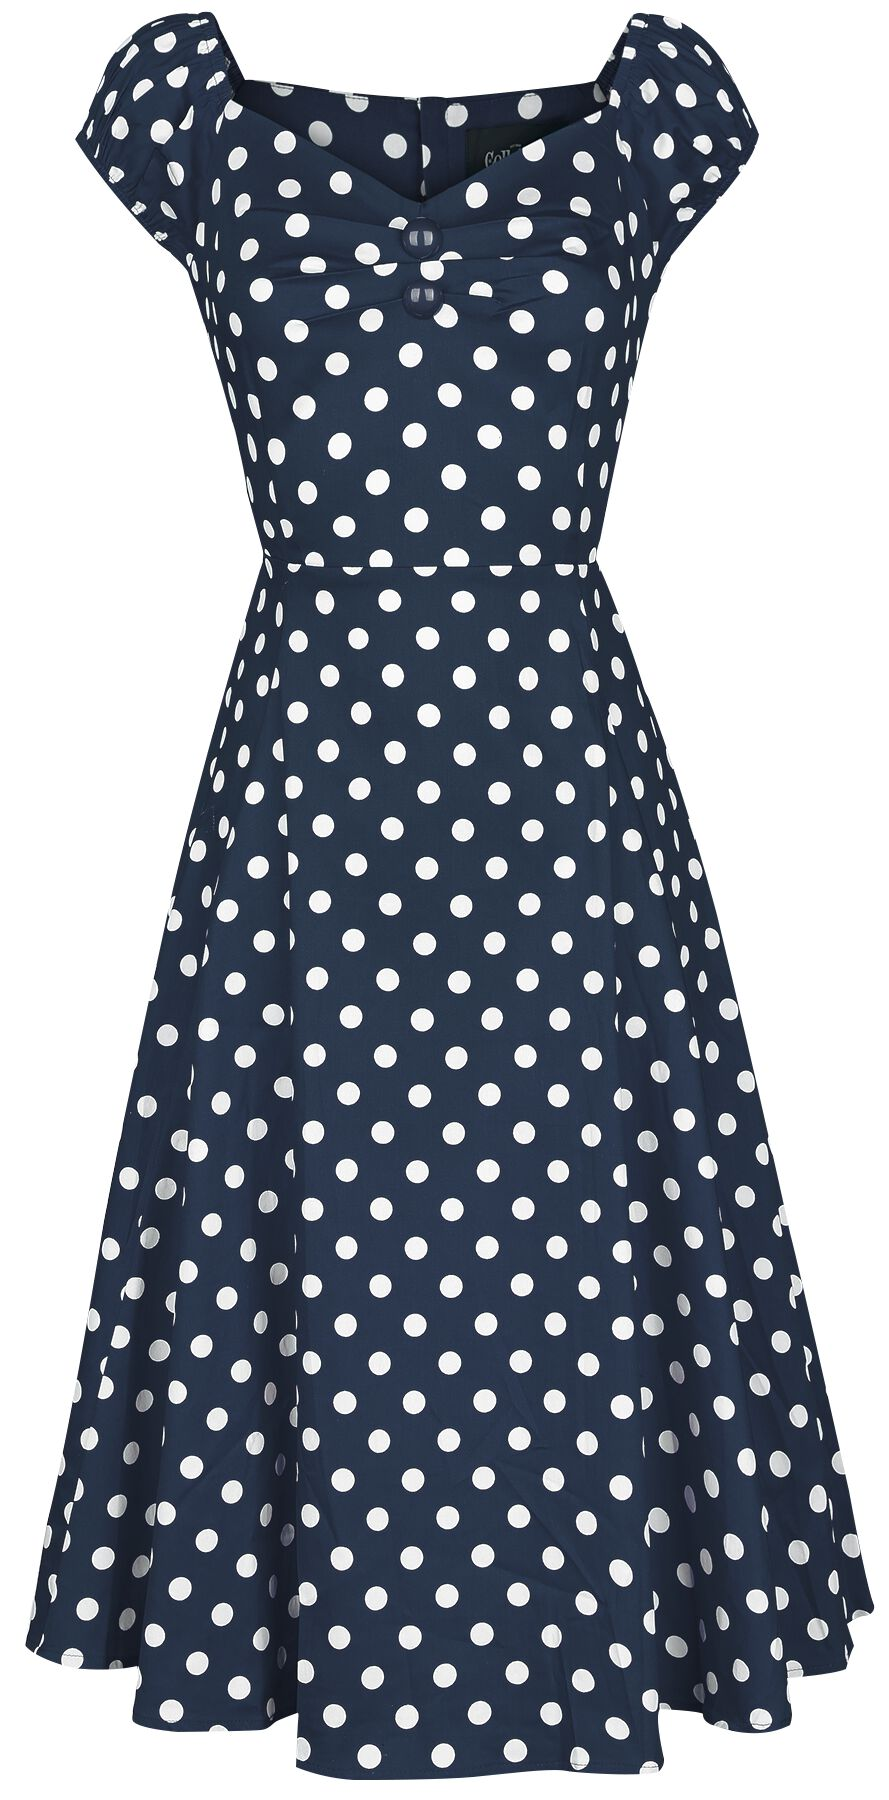 Collectif Clothing Dolores Doll Dress Polka Kle...